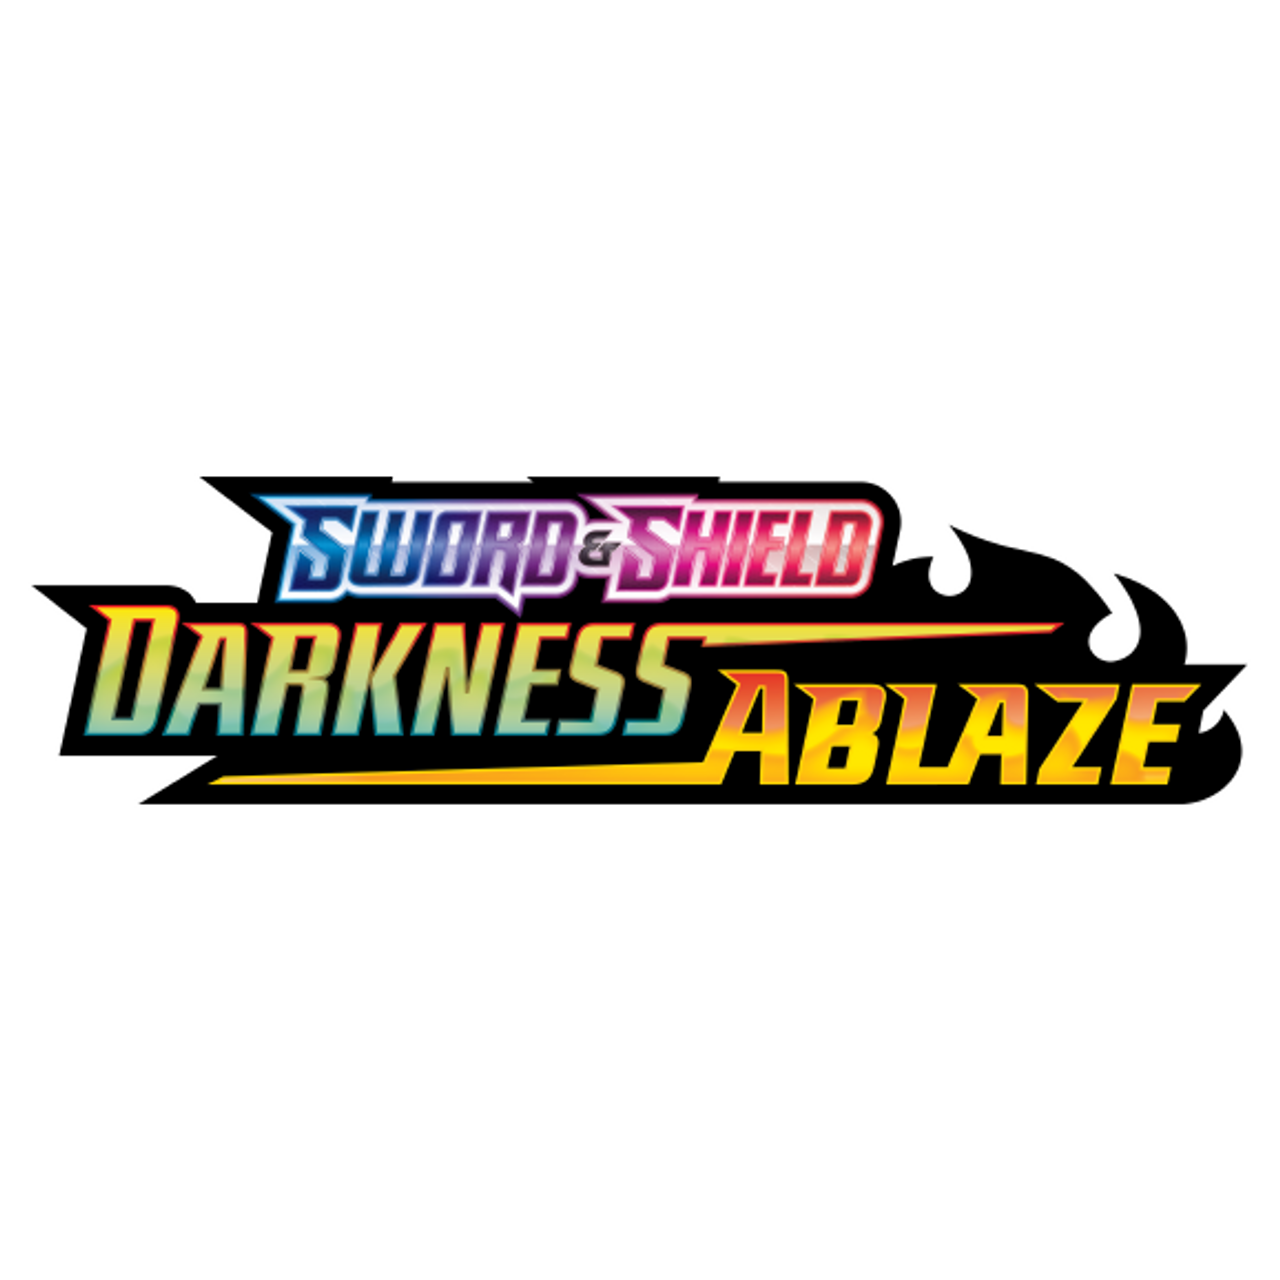 Sword & Shield 3 - Darkness Ablaze